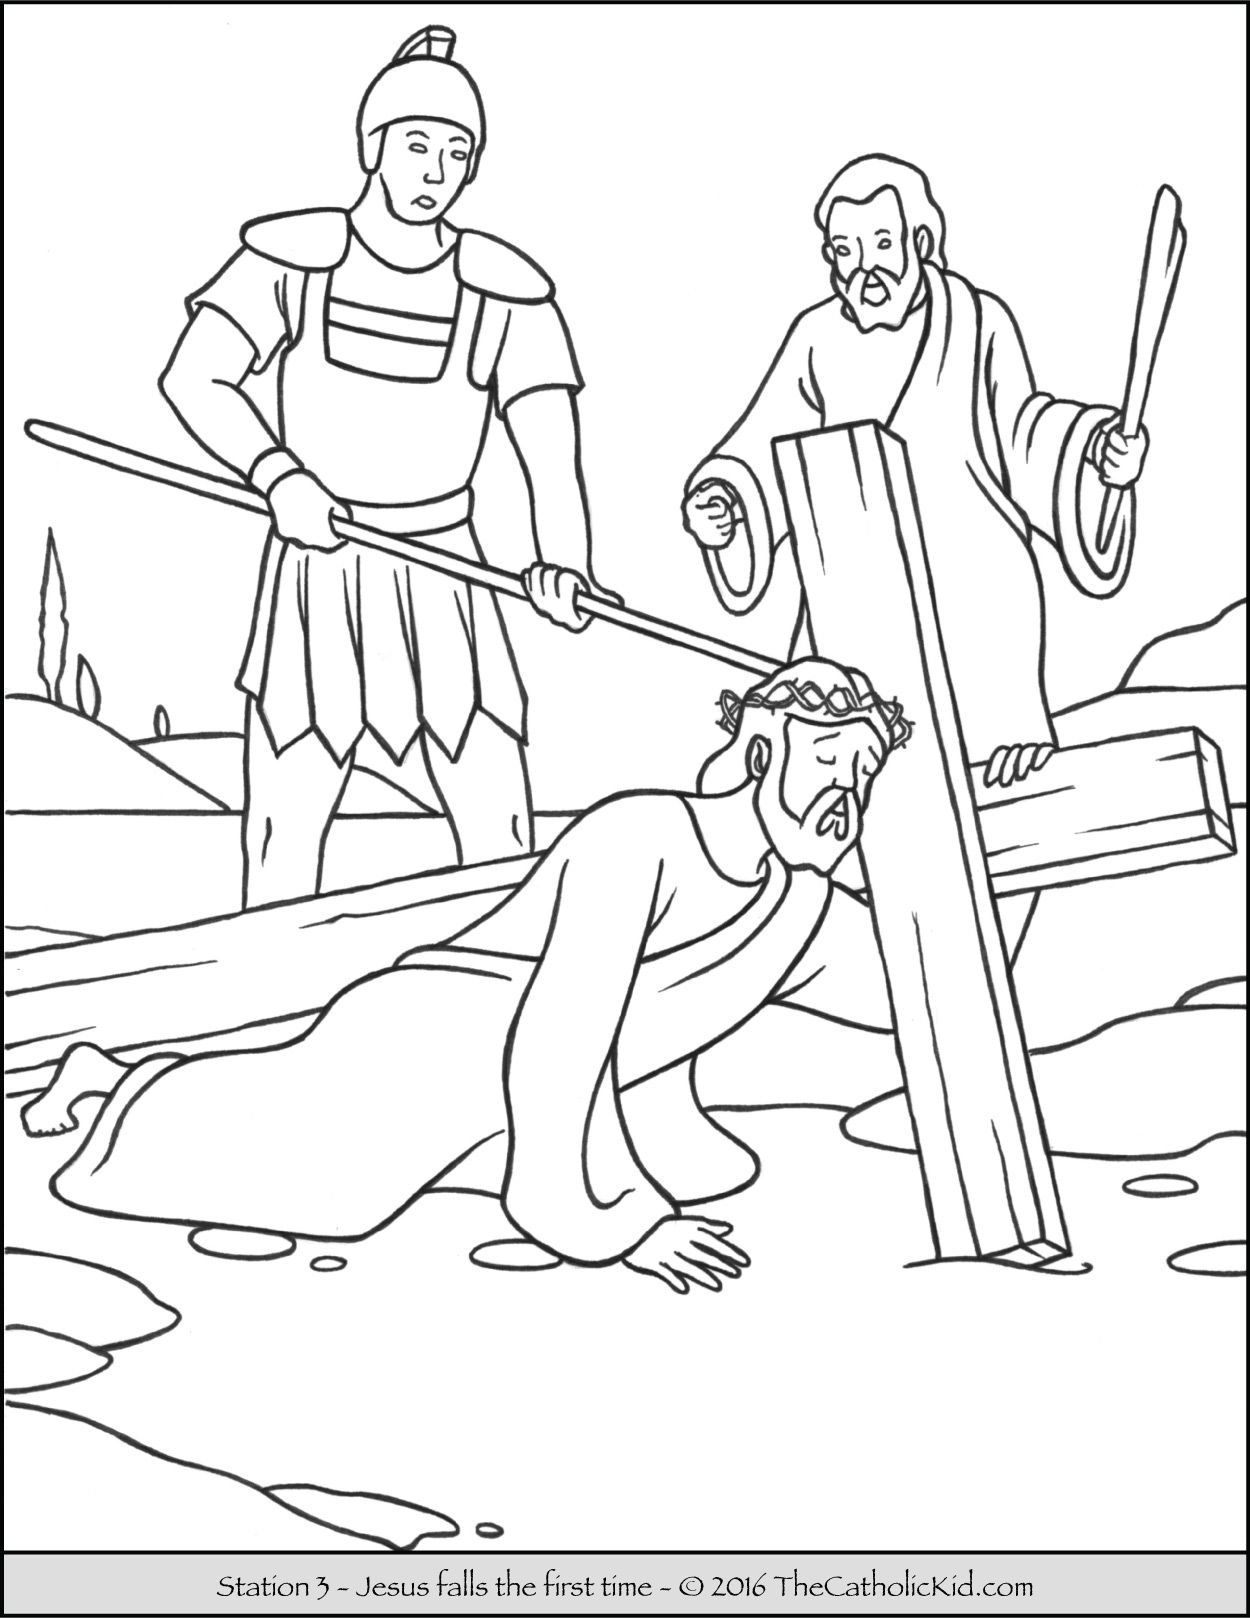 Stations of the Cross Coloring Pages 3 Jesus falls the